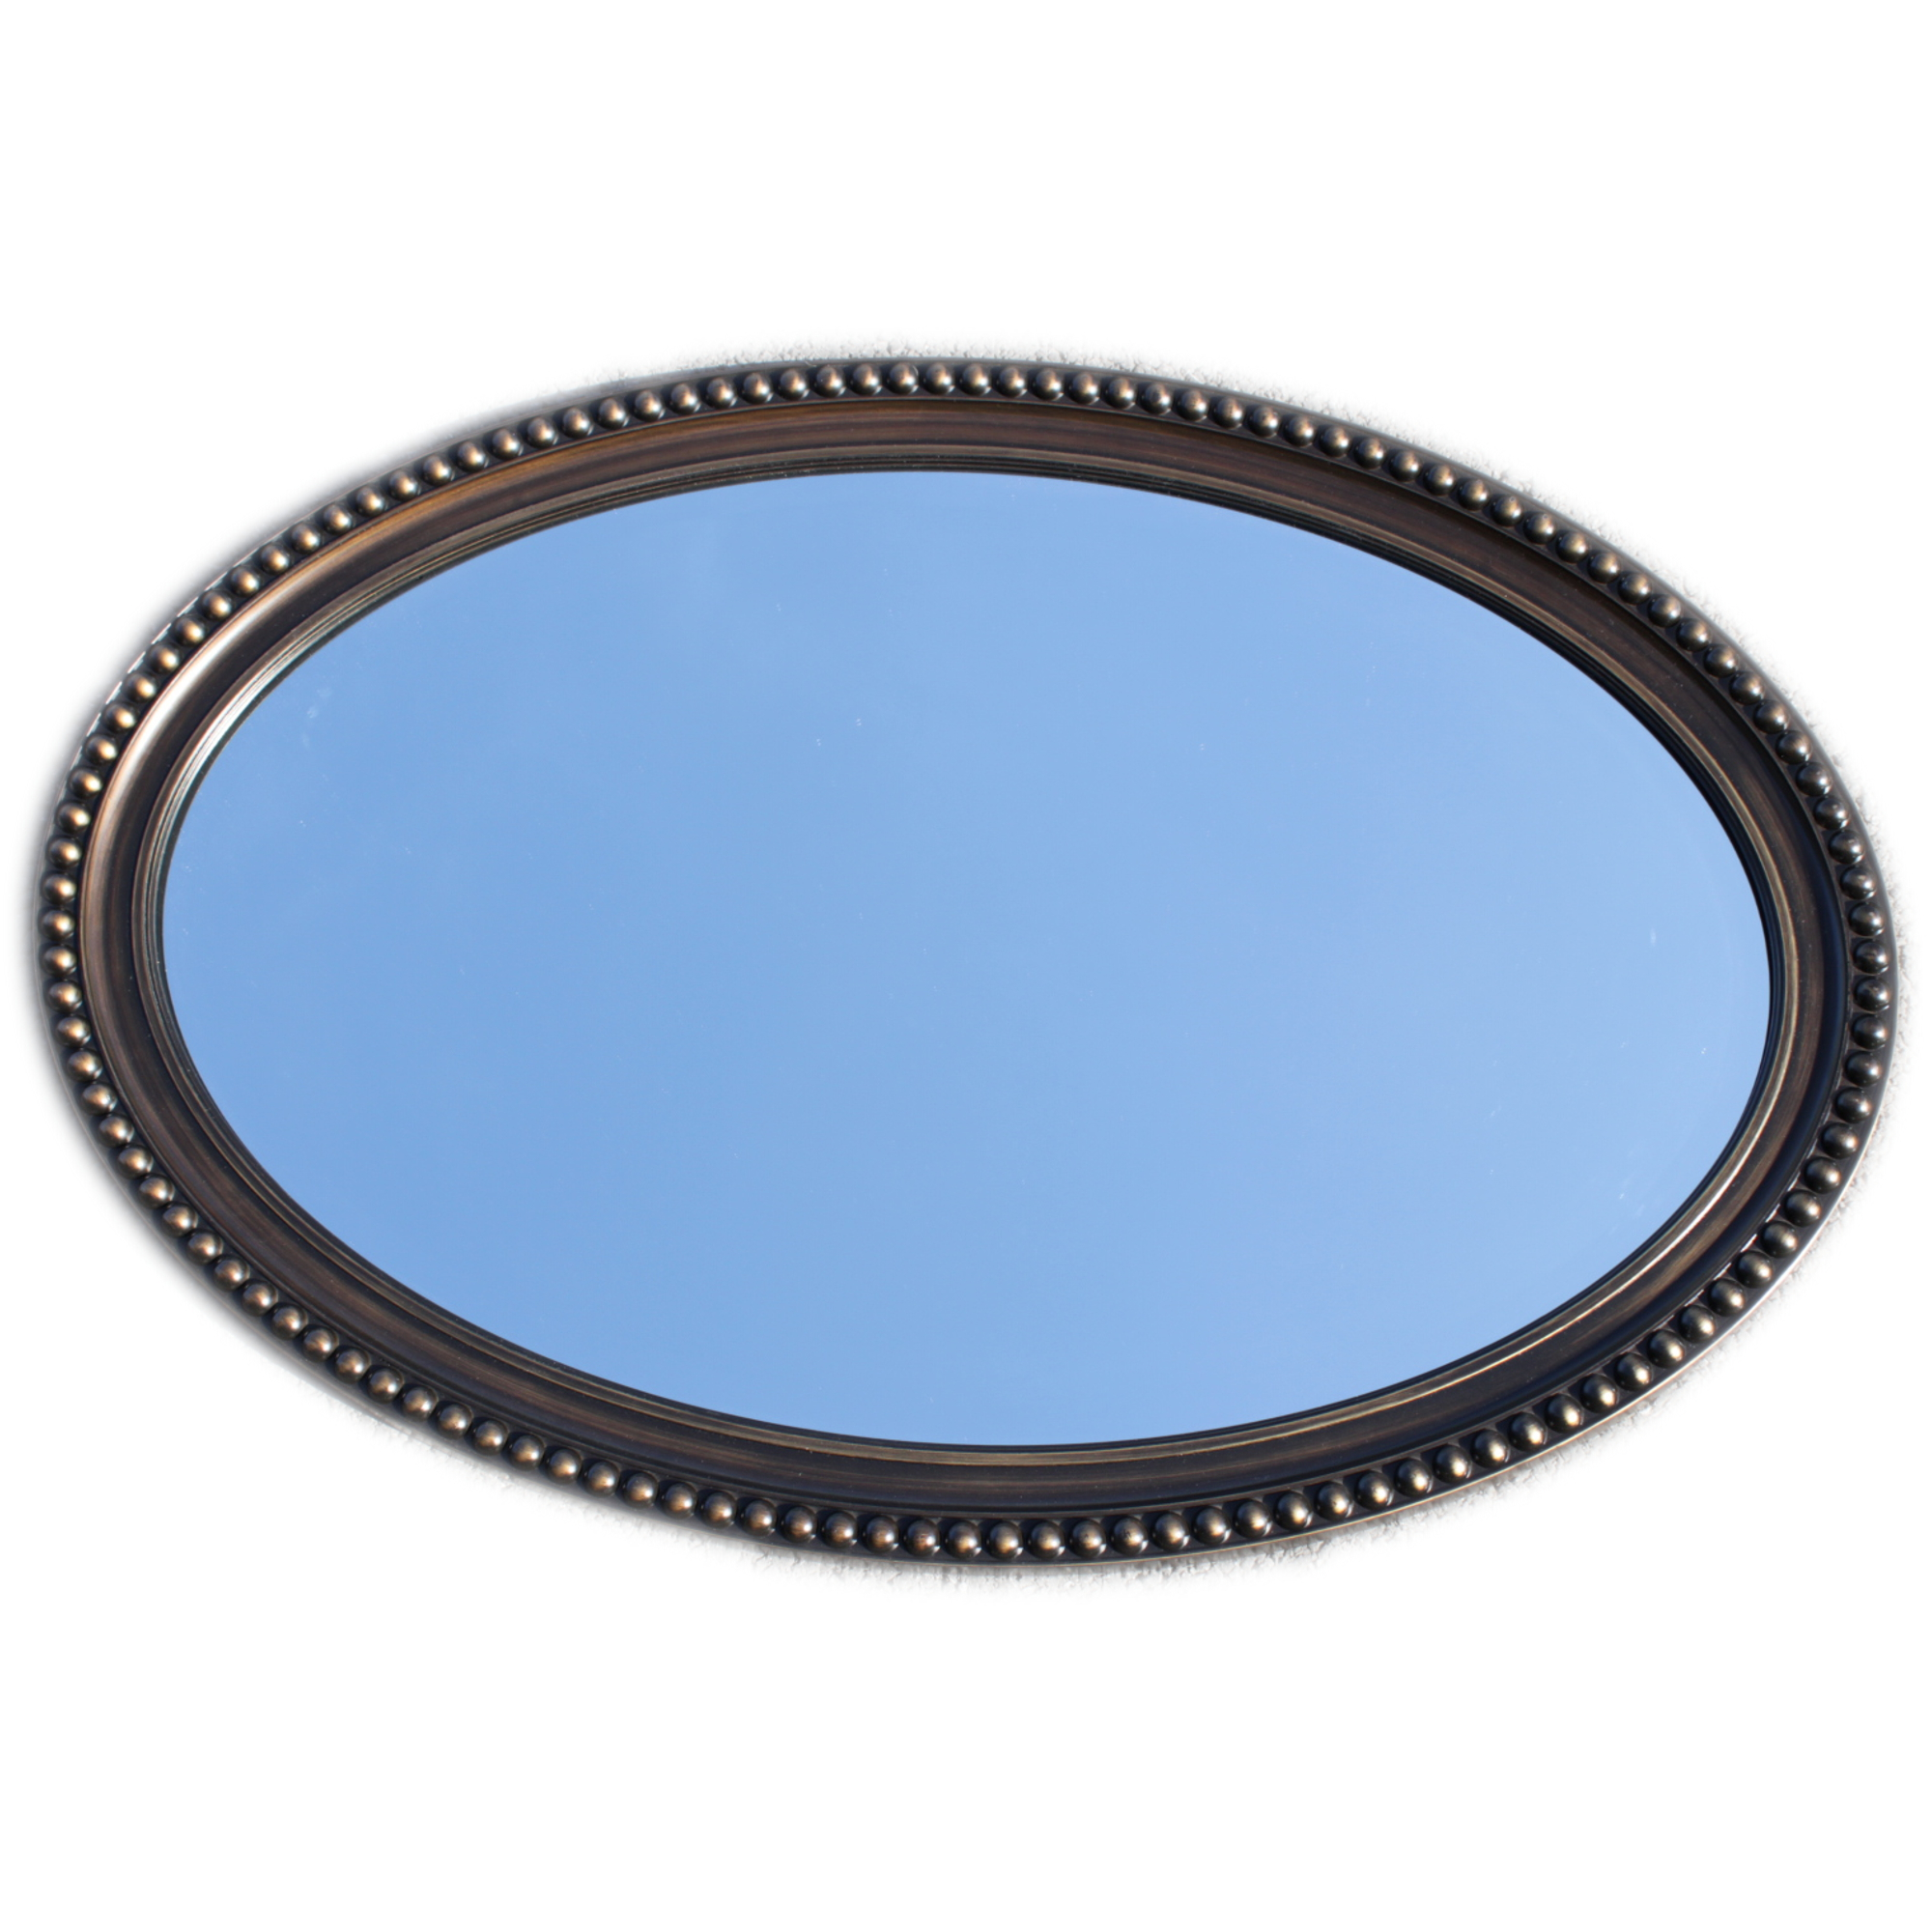 Classic oval shaped hallway mirror black champagne for Classic mirror